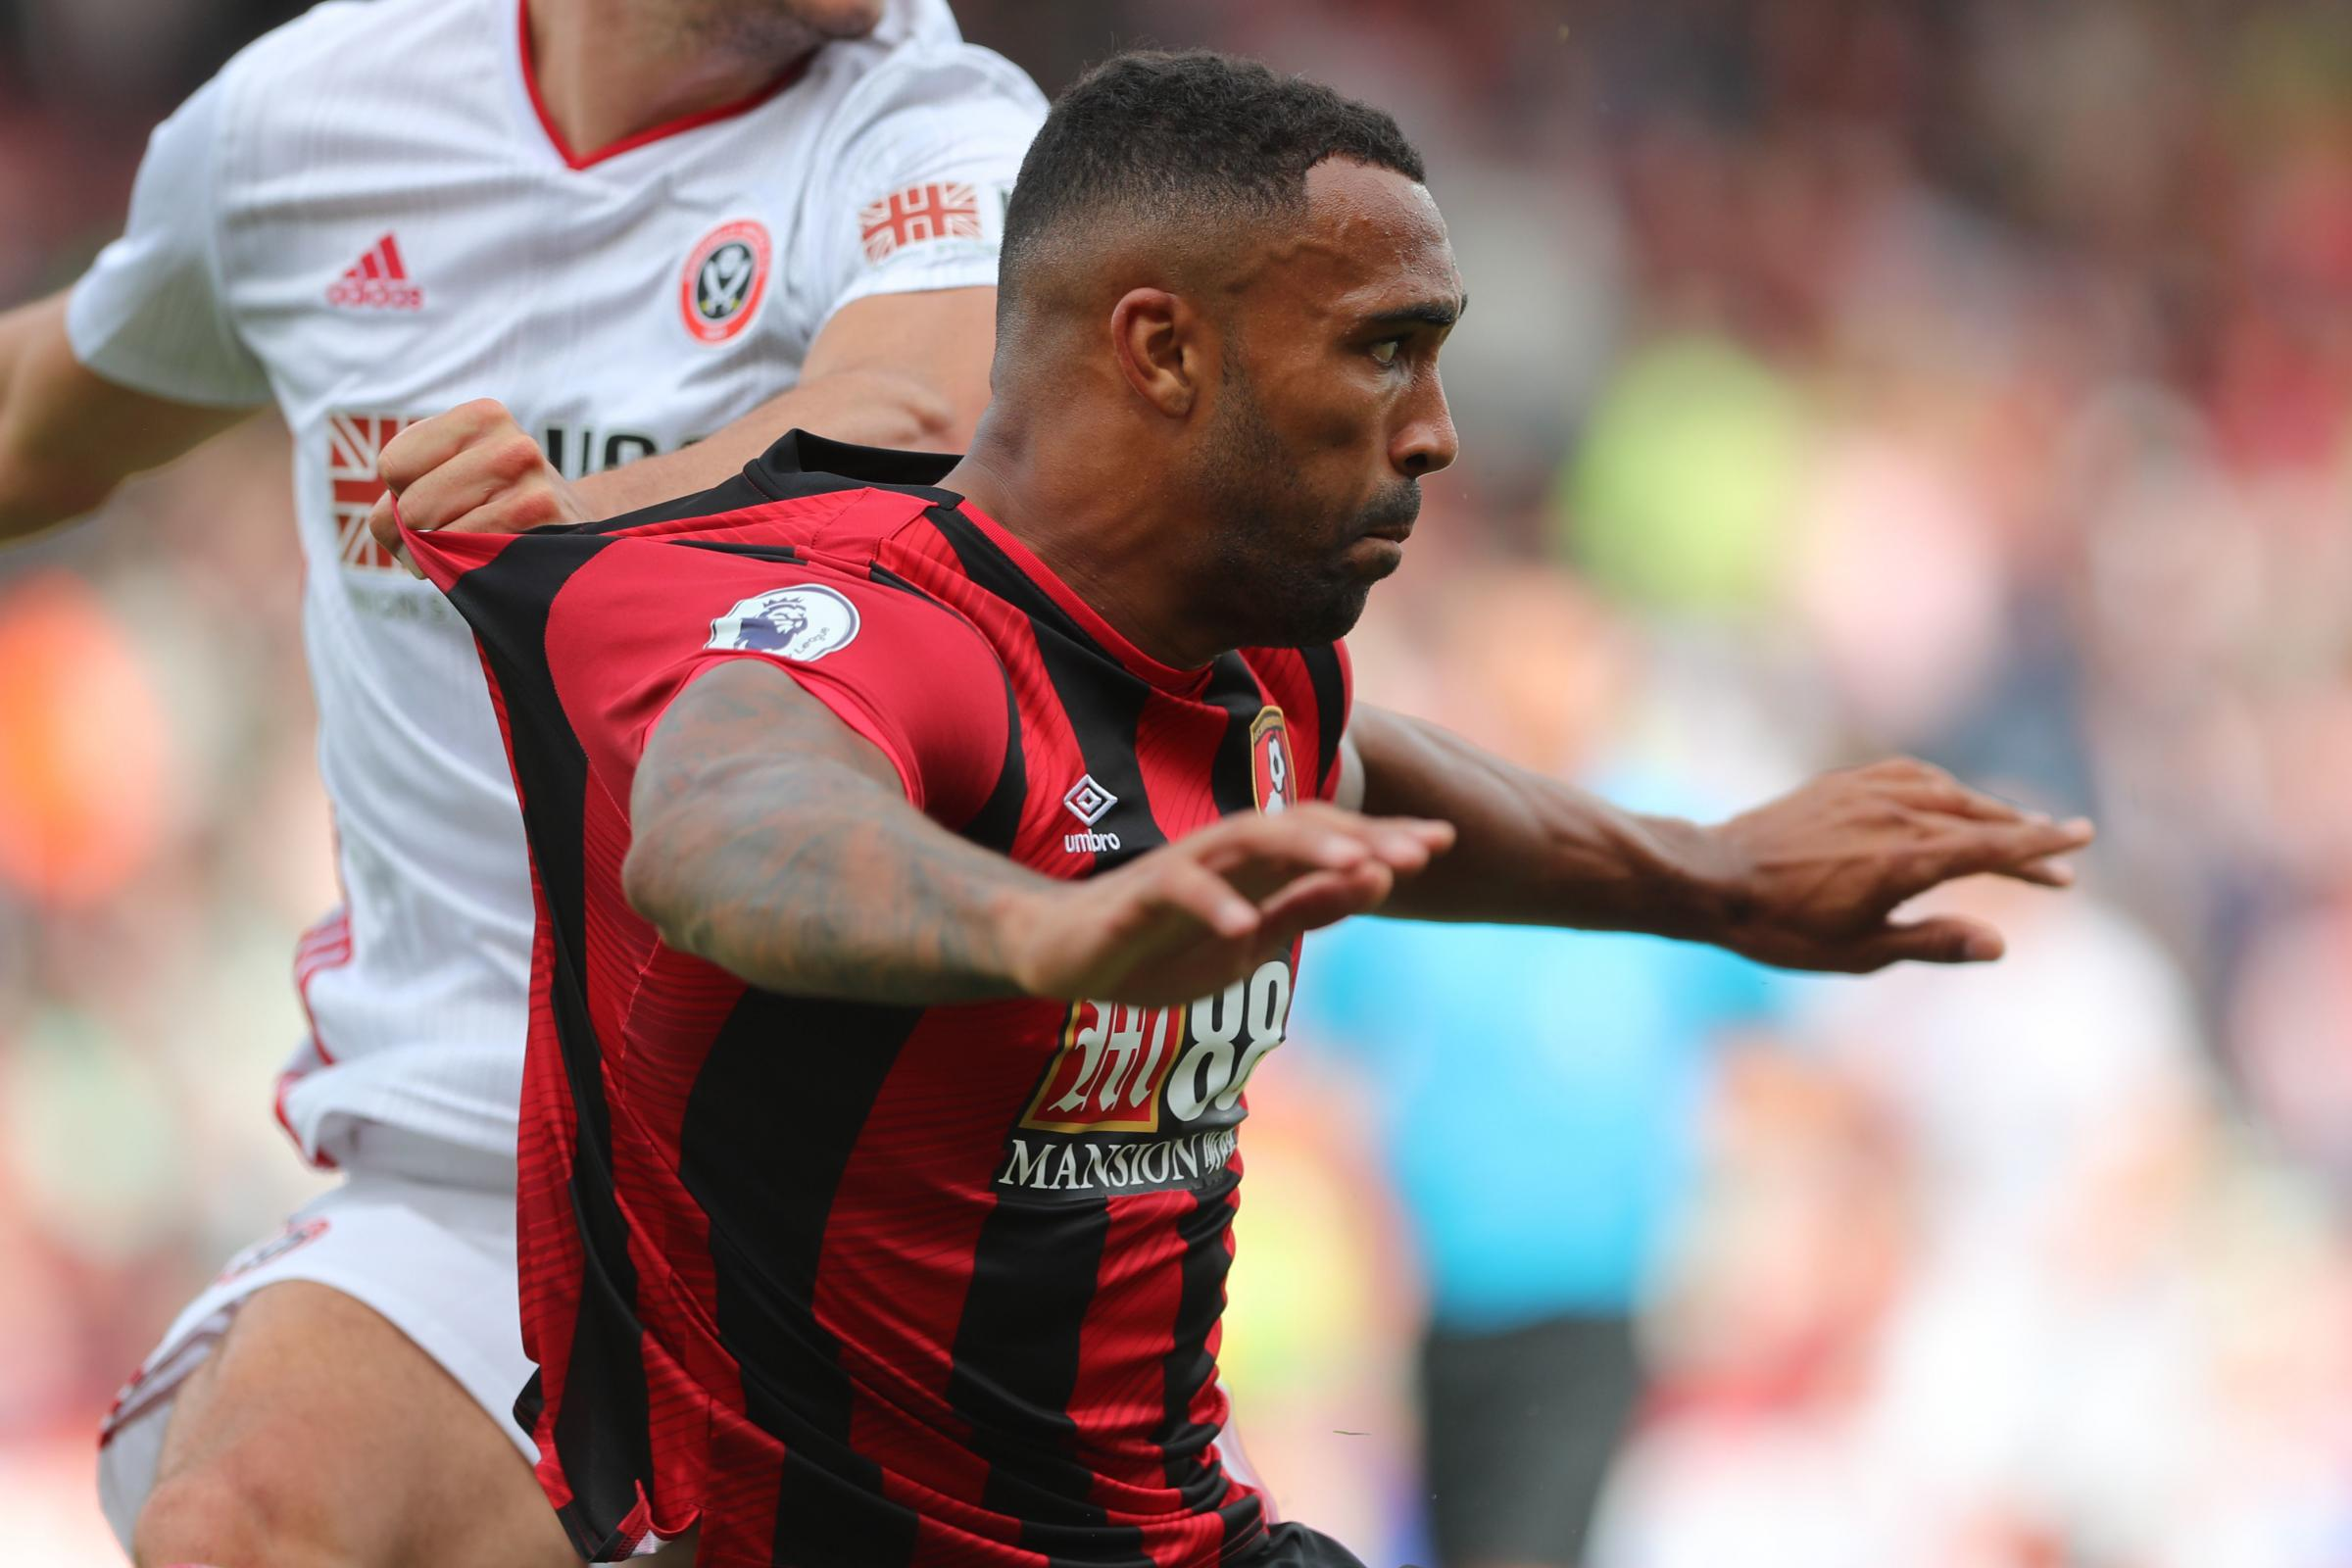 'I'm not just going to dive in the box' - Callum Wilson frustrated by simulation caution